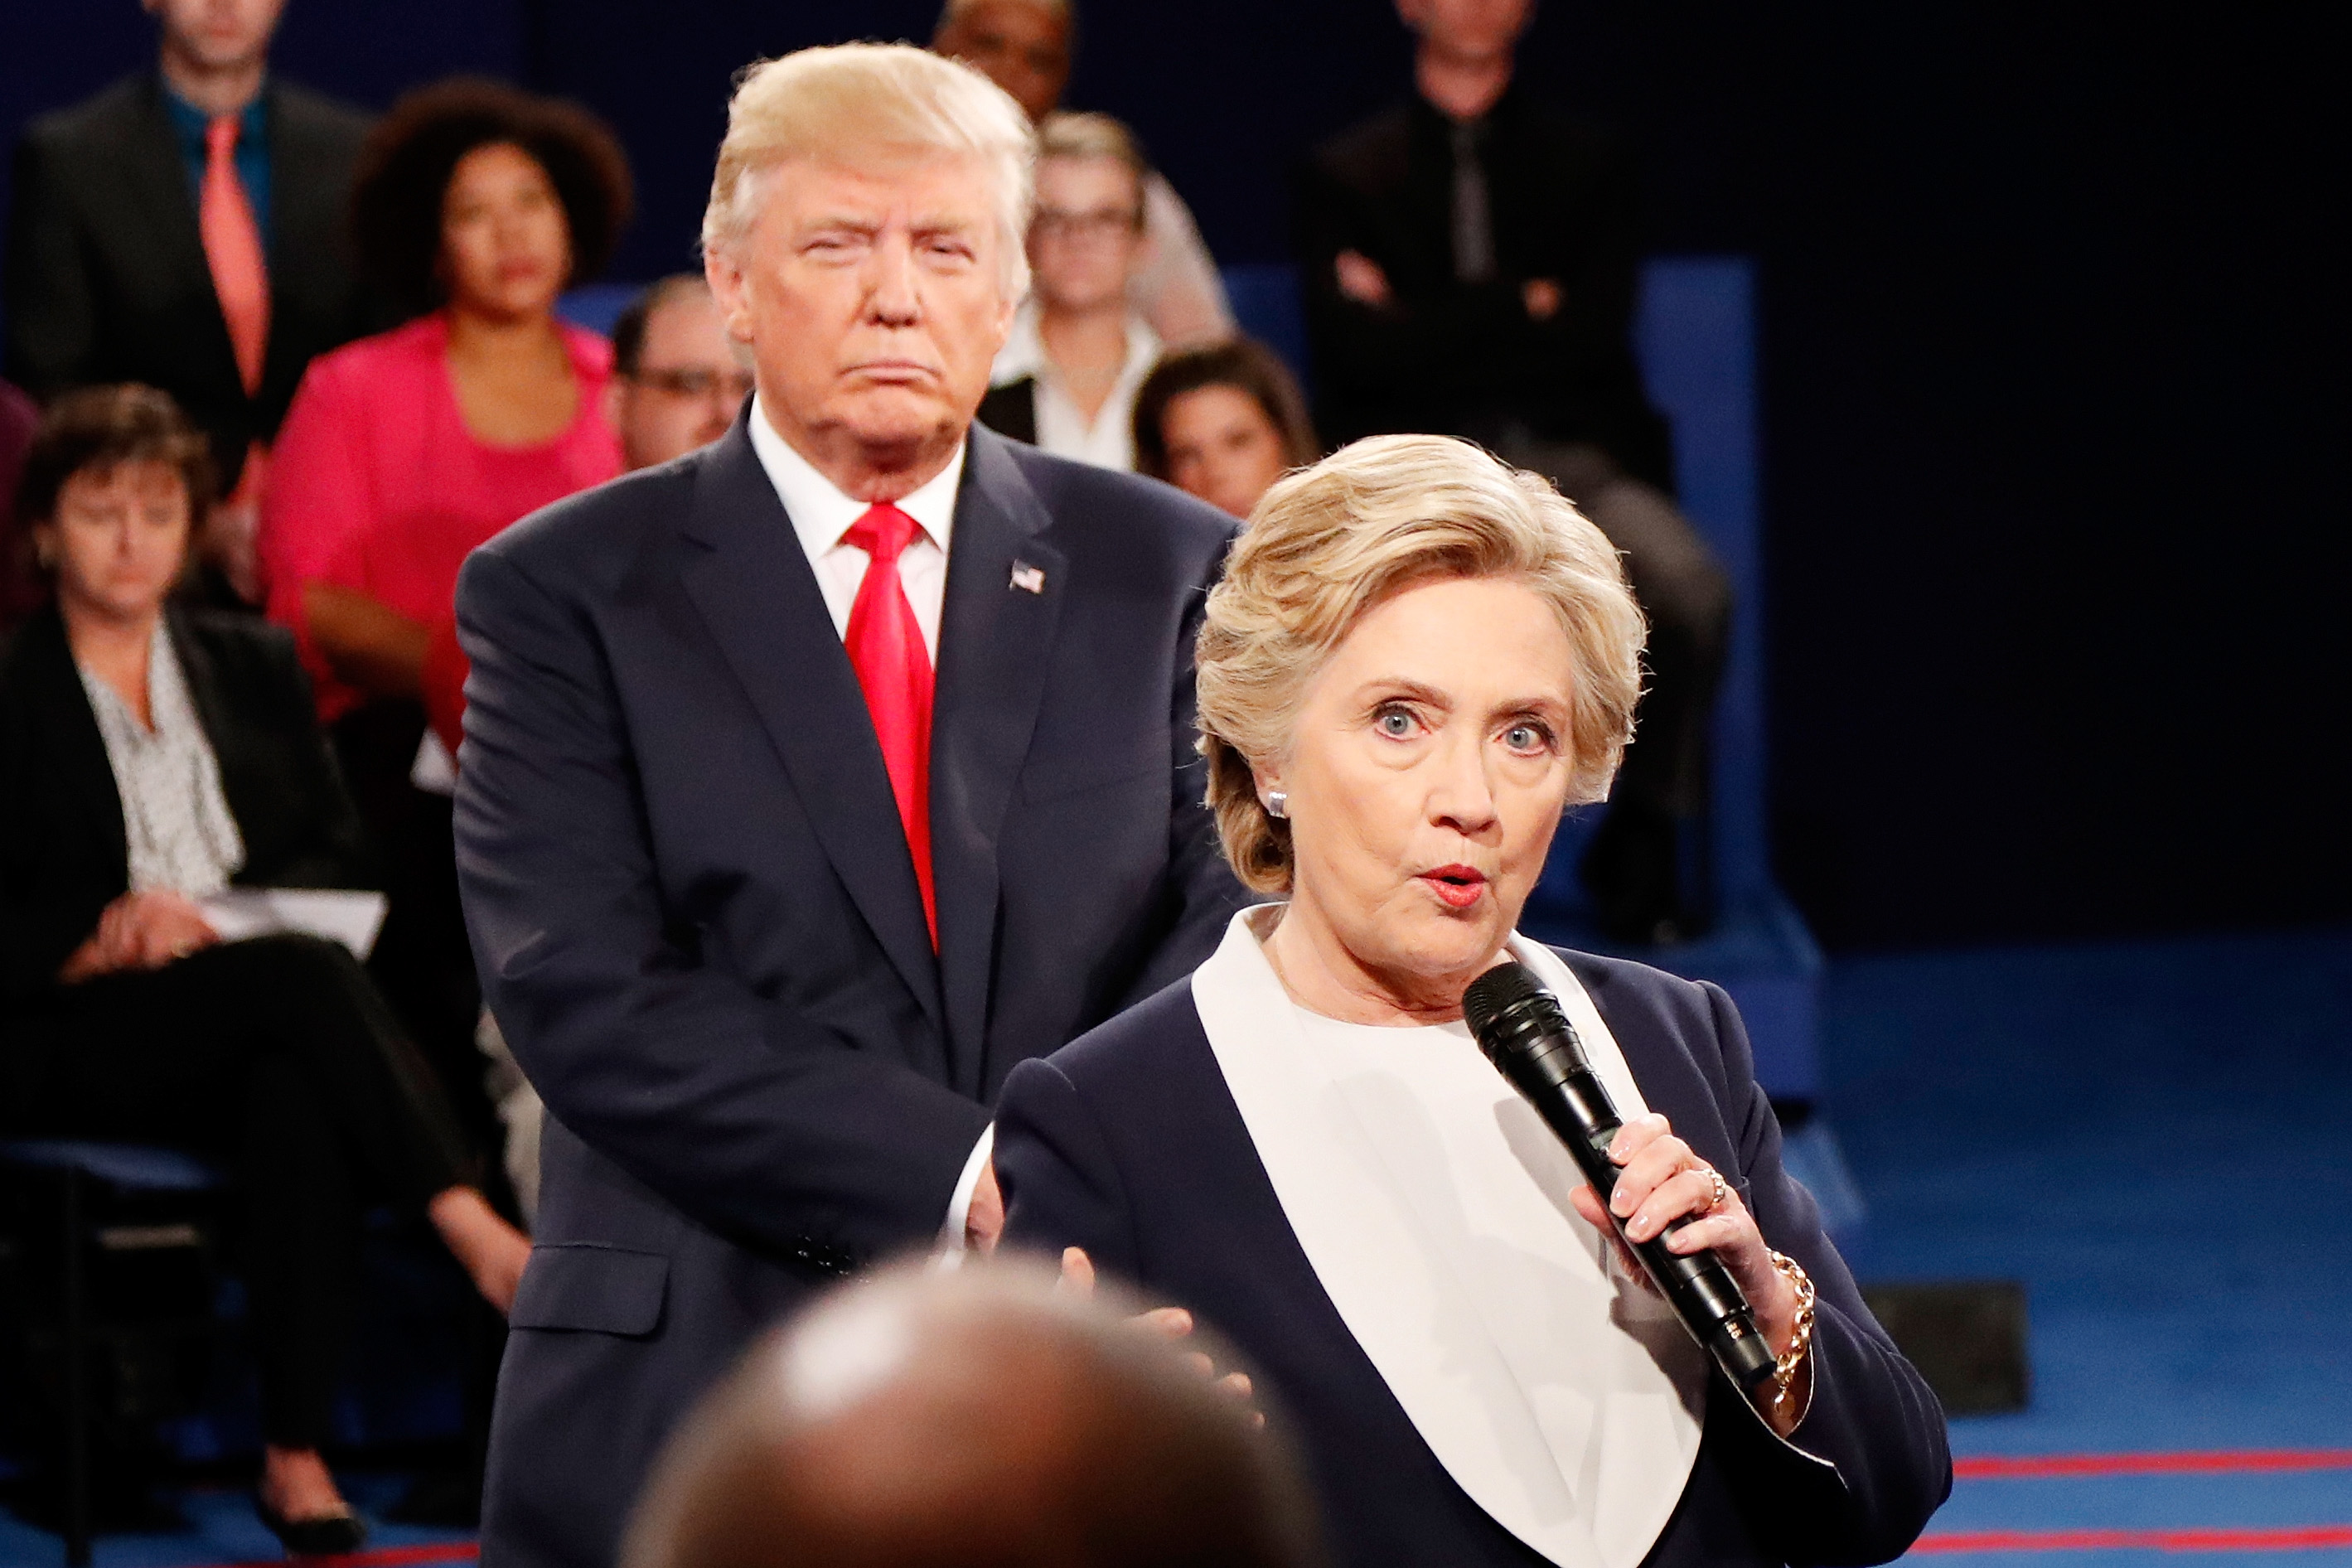 Hillary Vs Trump Funny Meme : Memes about donald trump standing so close to hillary clinton are